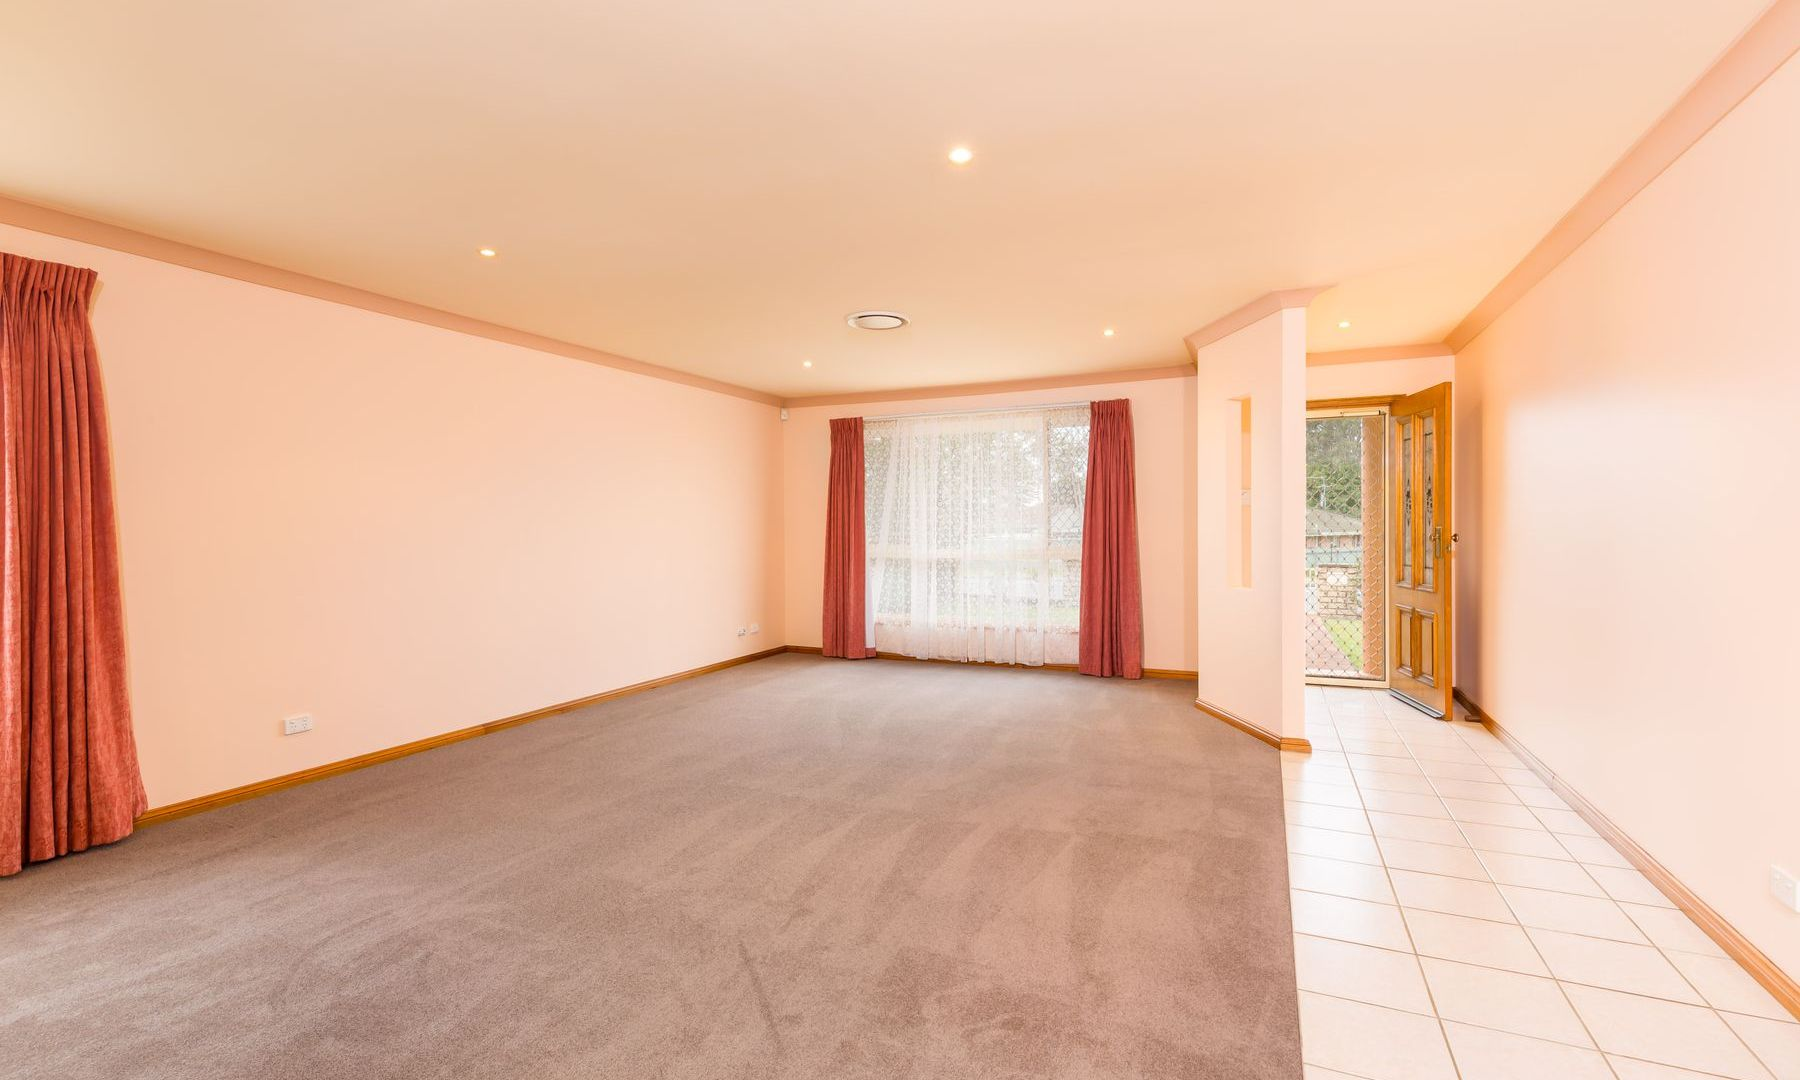 107 Marmong Street, Marmong Point NSW 2284, Image 2